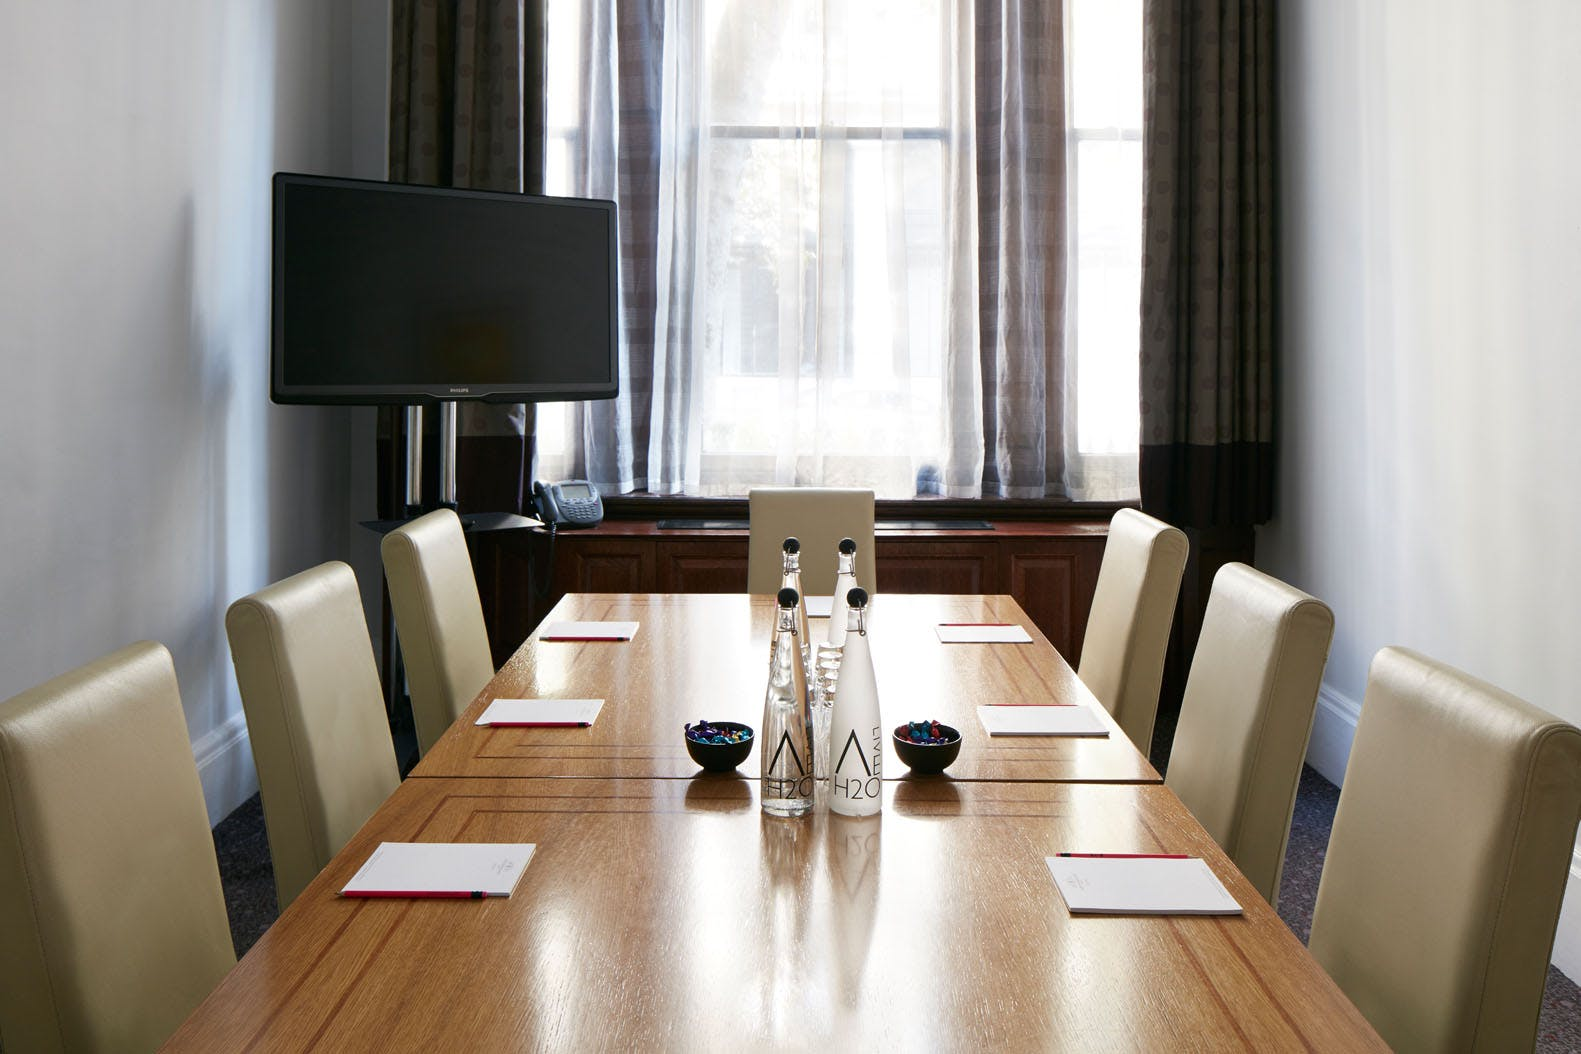 Meeting Room at Club Quarters Hotel, Trafalgar Square, London